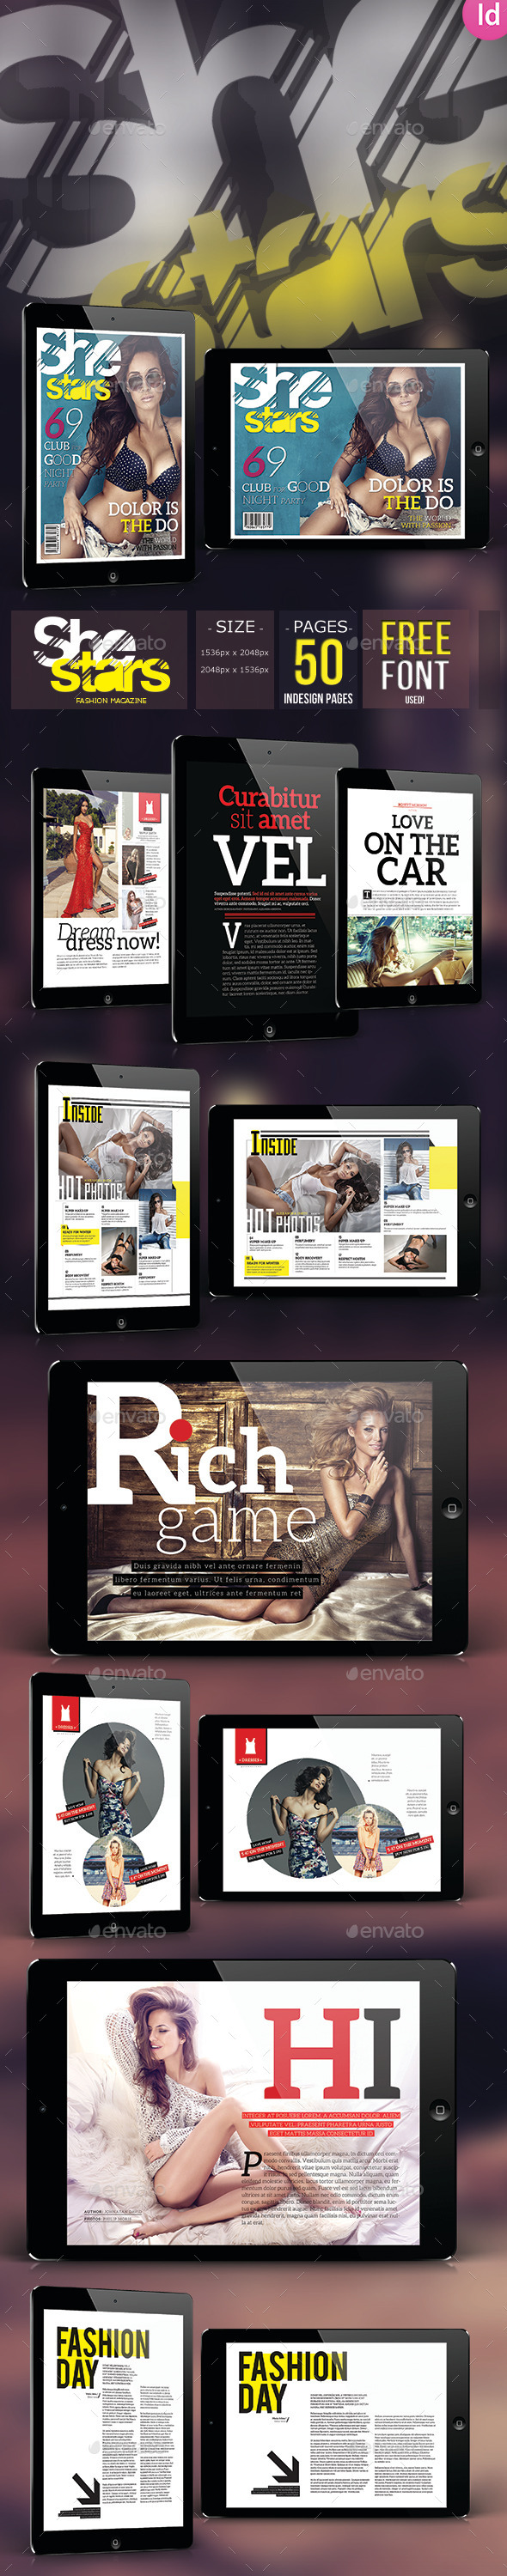 She Star - Fashion Magazine For Tablet - Digital Magazines ePublishing